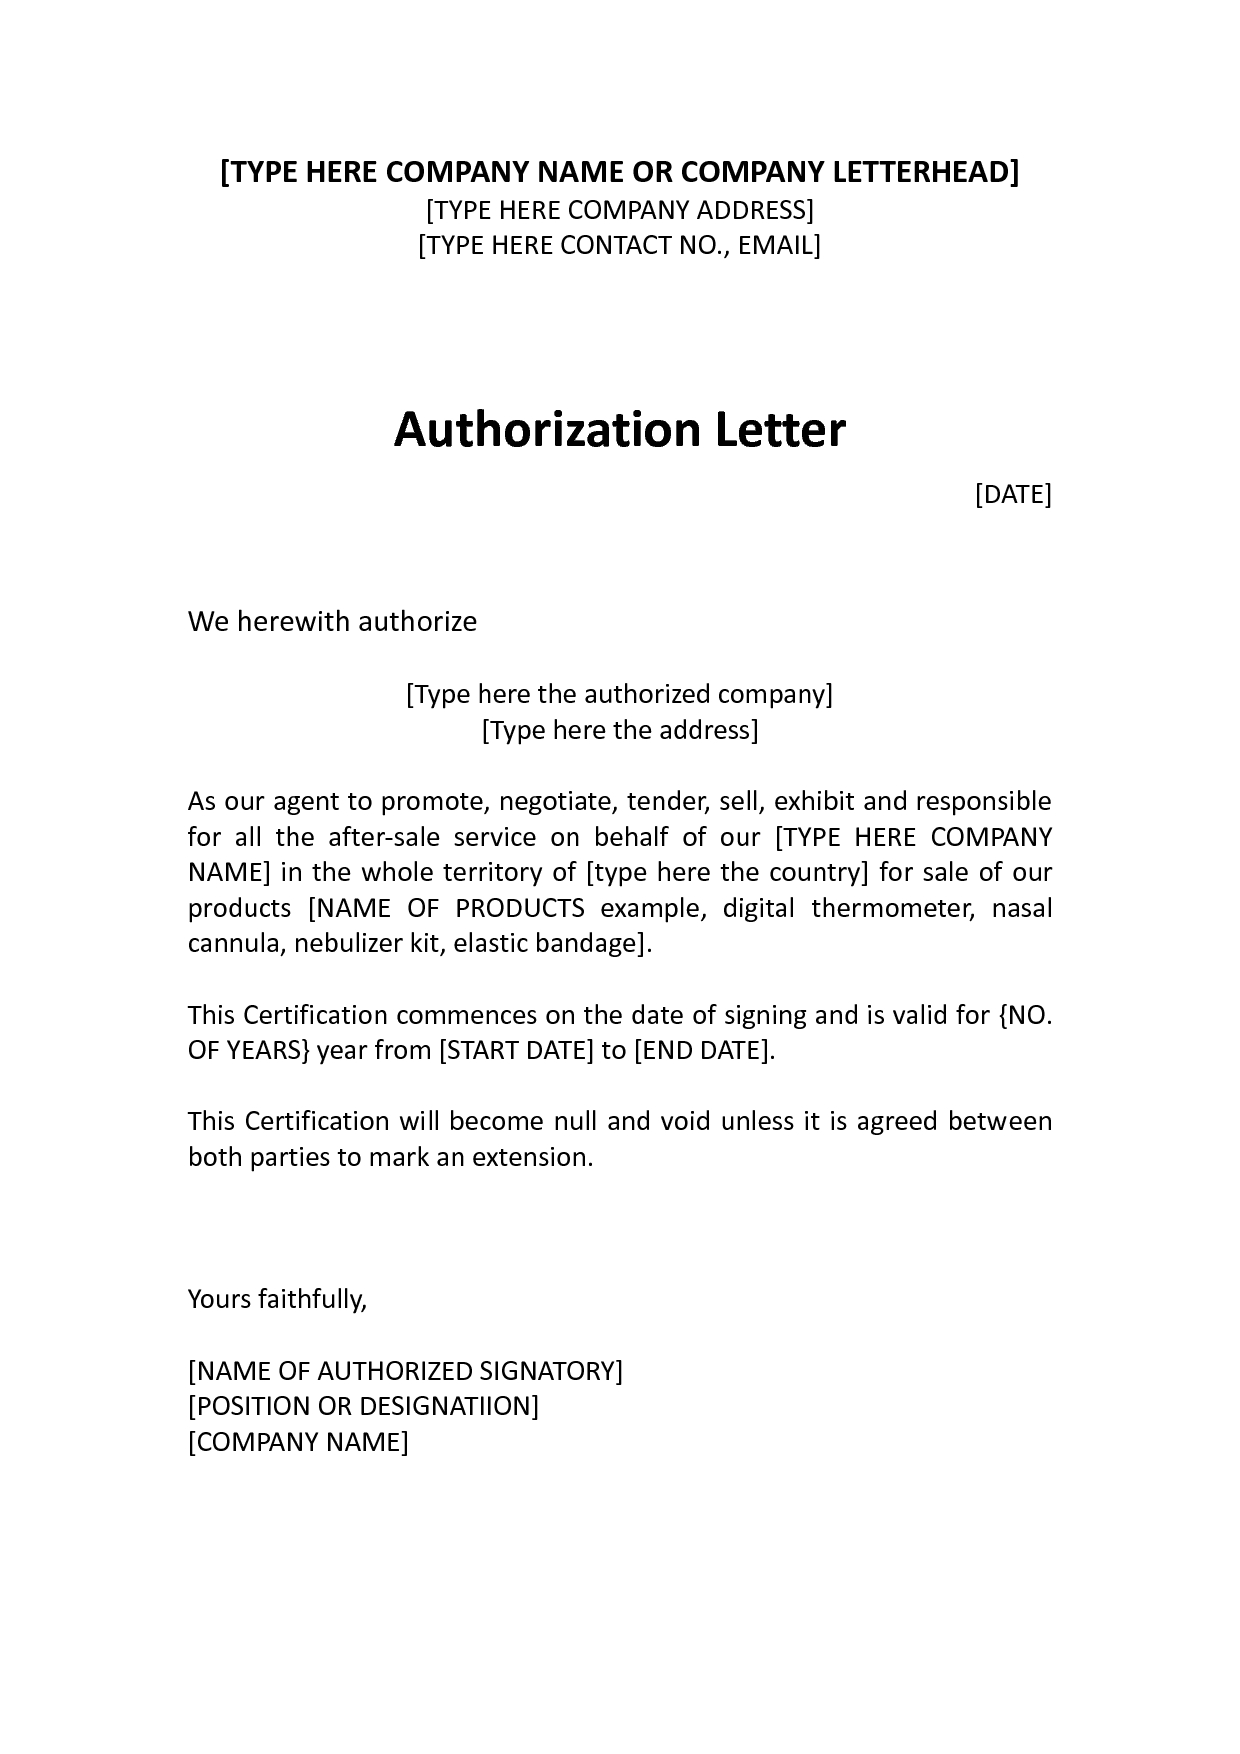 Child Care Authorization Letter Template - Authorization Distributor Letter Sample Distributor Dealer